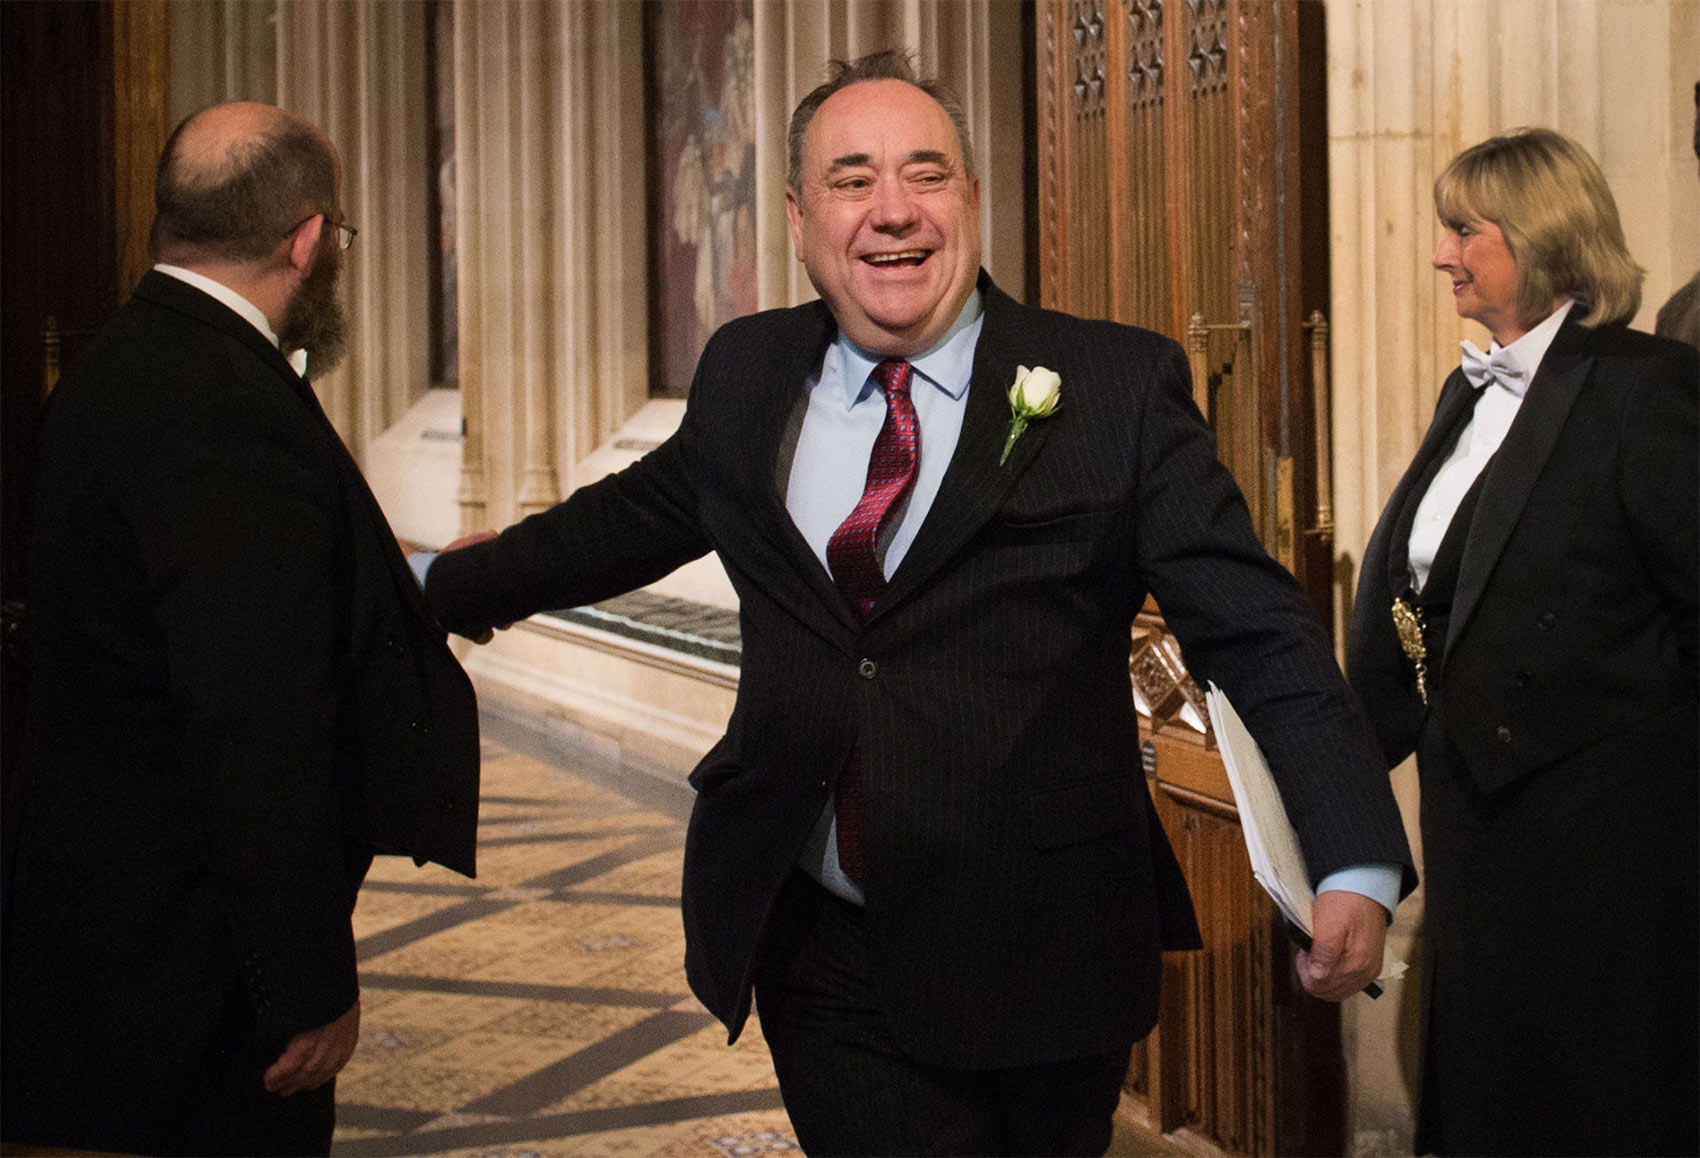 Alex Salmond arrives for the State Opening of Parliament, May 27th, 2015